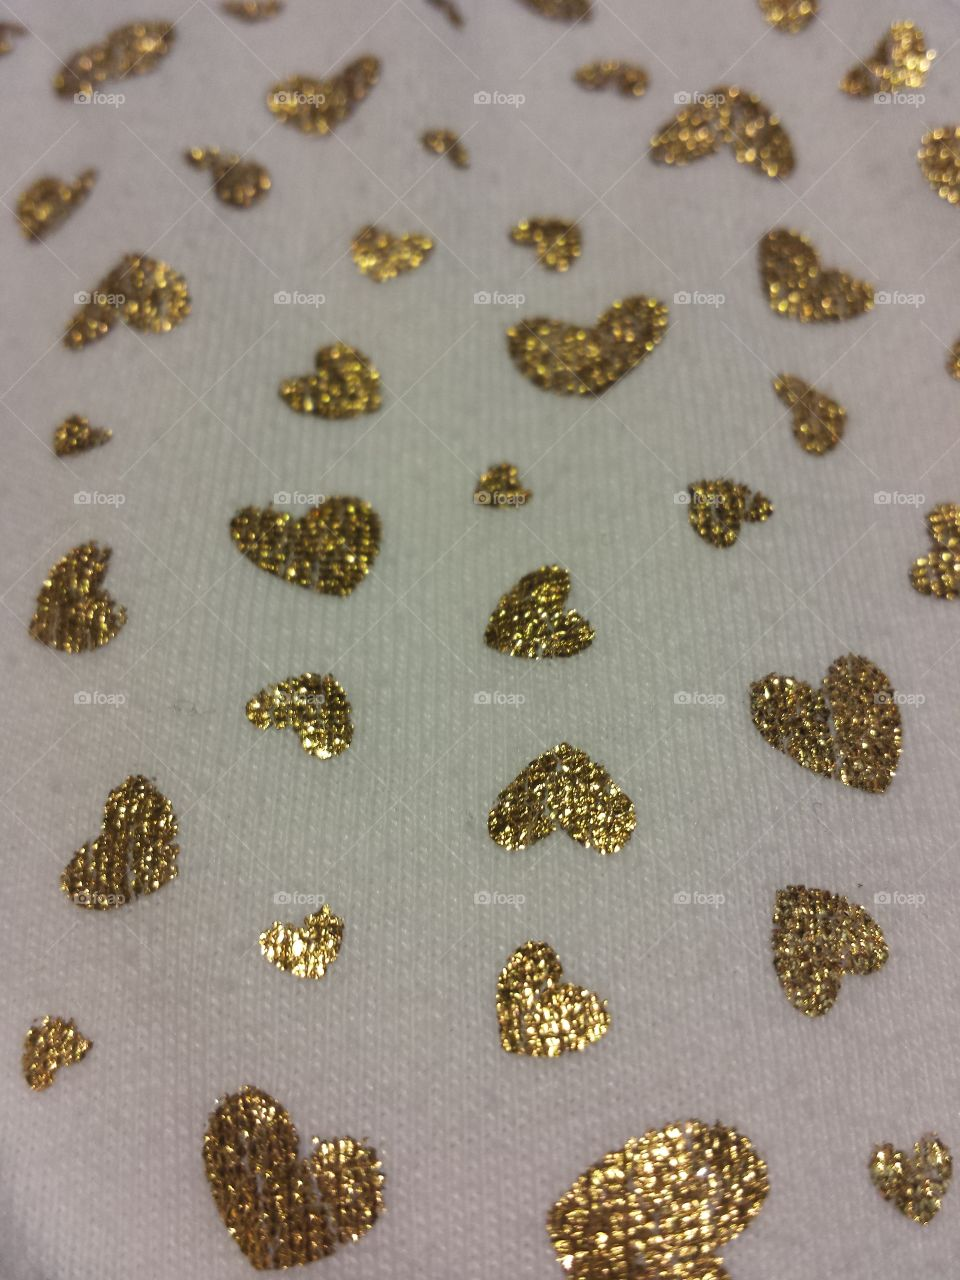 Gold Hearts on White Fabric